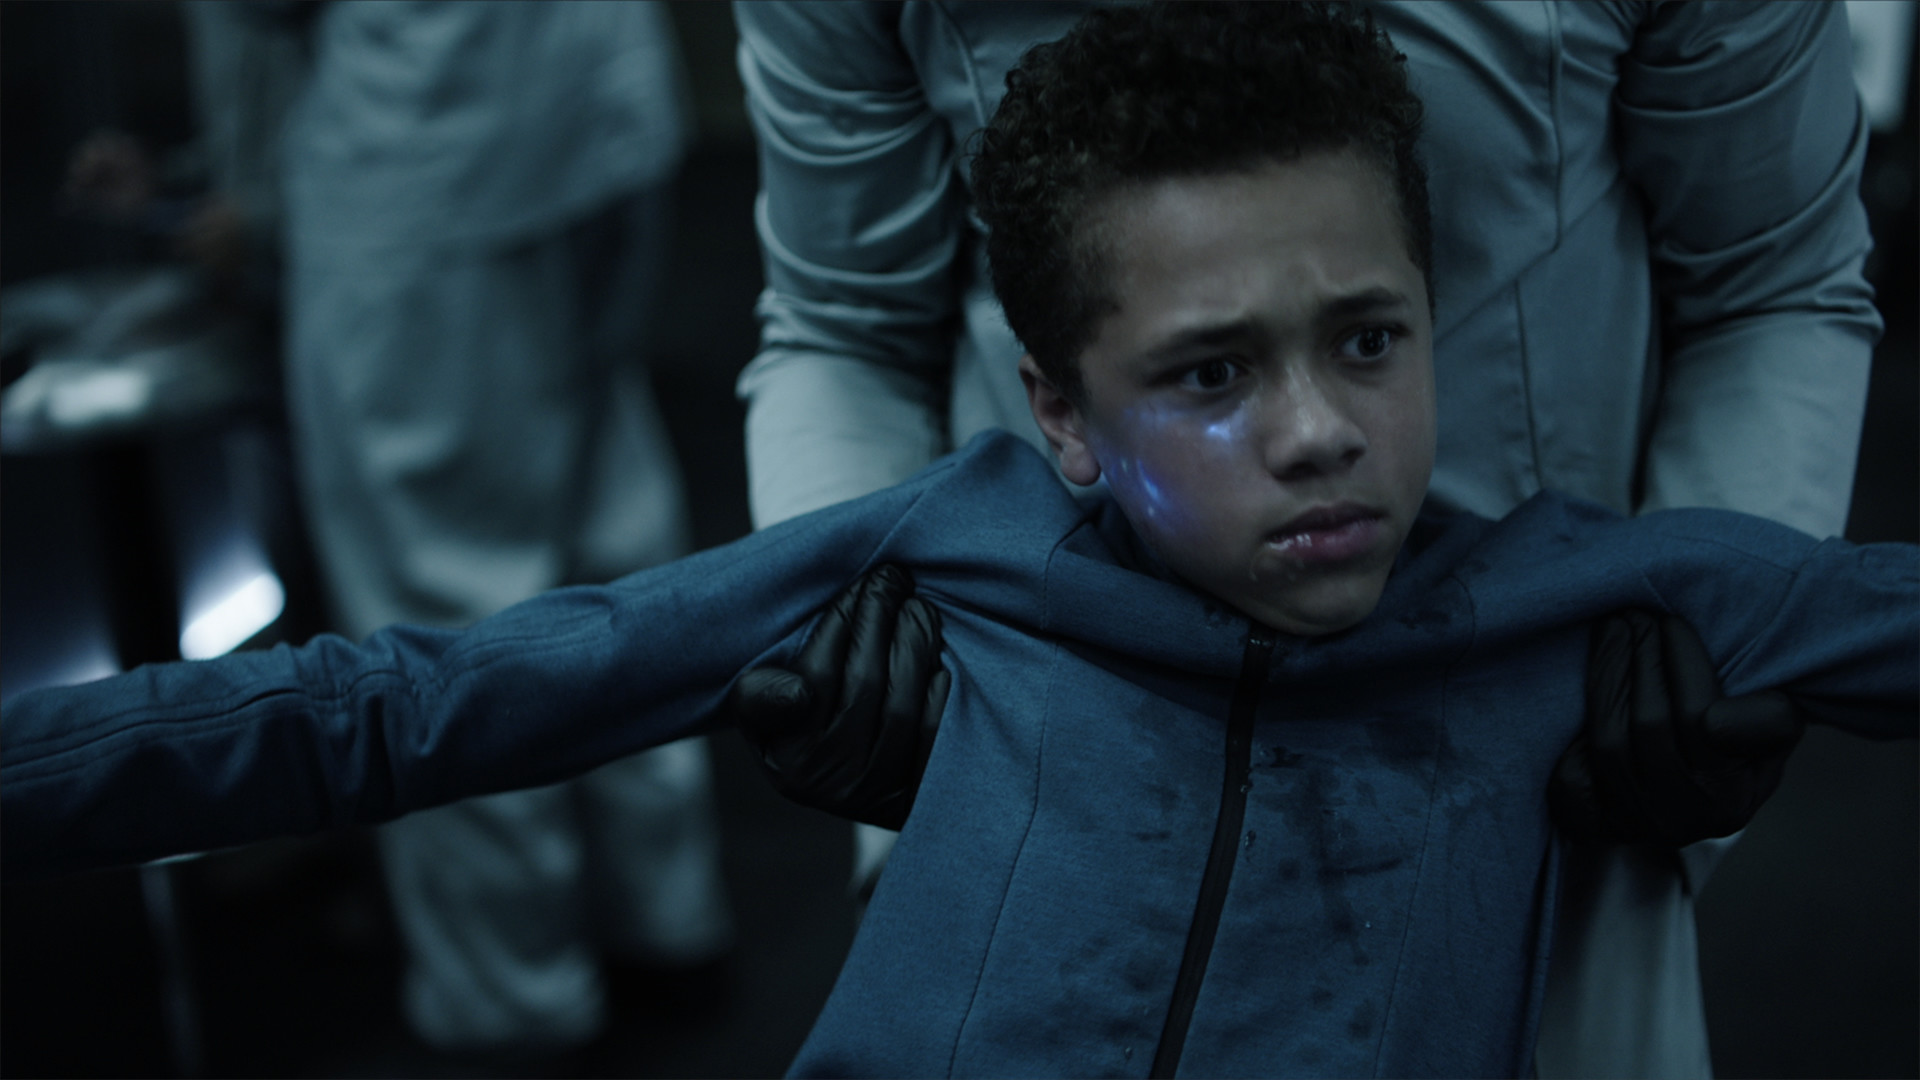 theexpanse_10thoughts_episode303_2.jpg